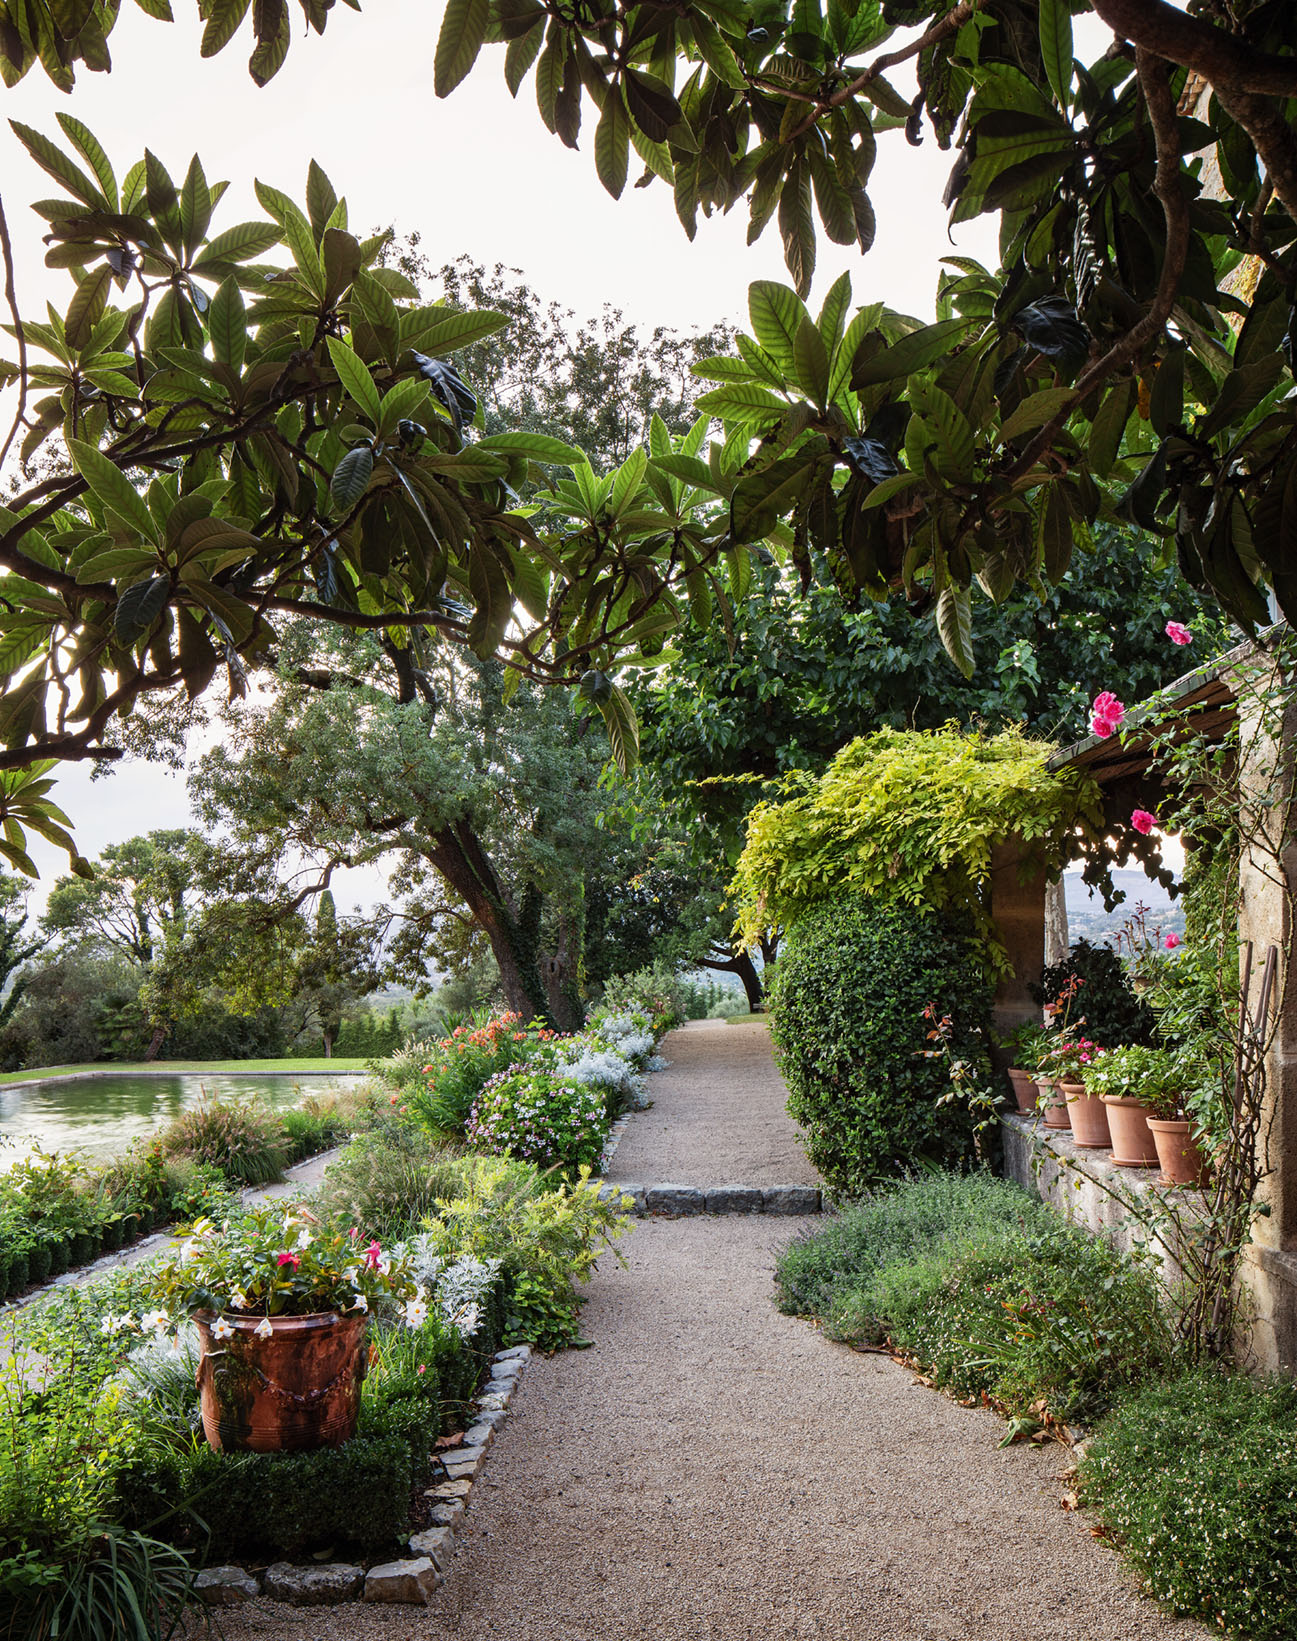 Christian Dior's garden from the book Dior in Bloom